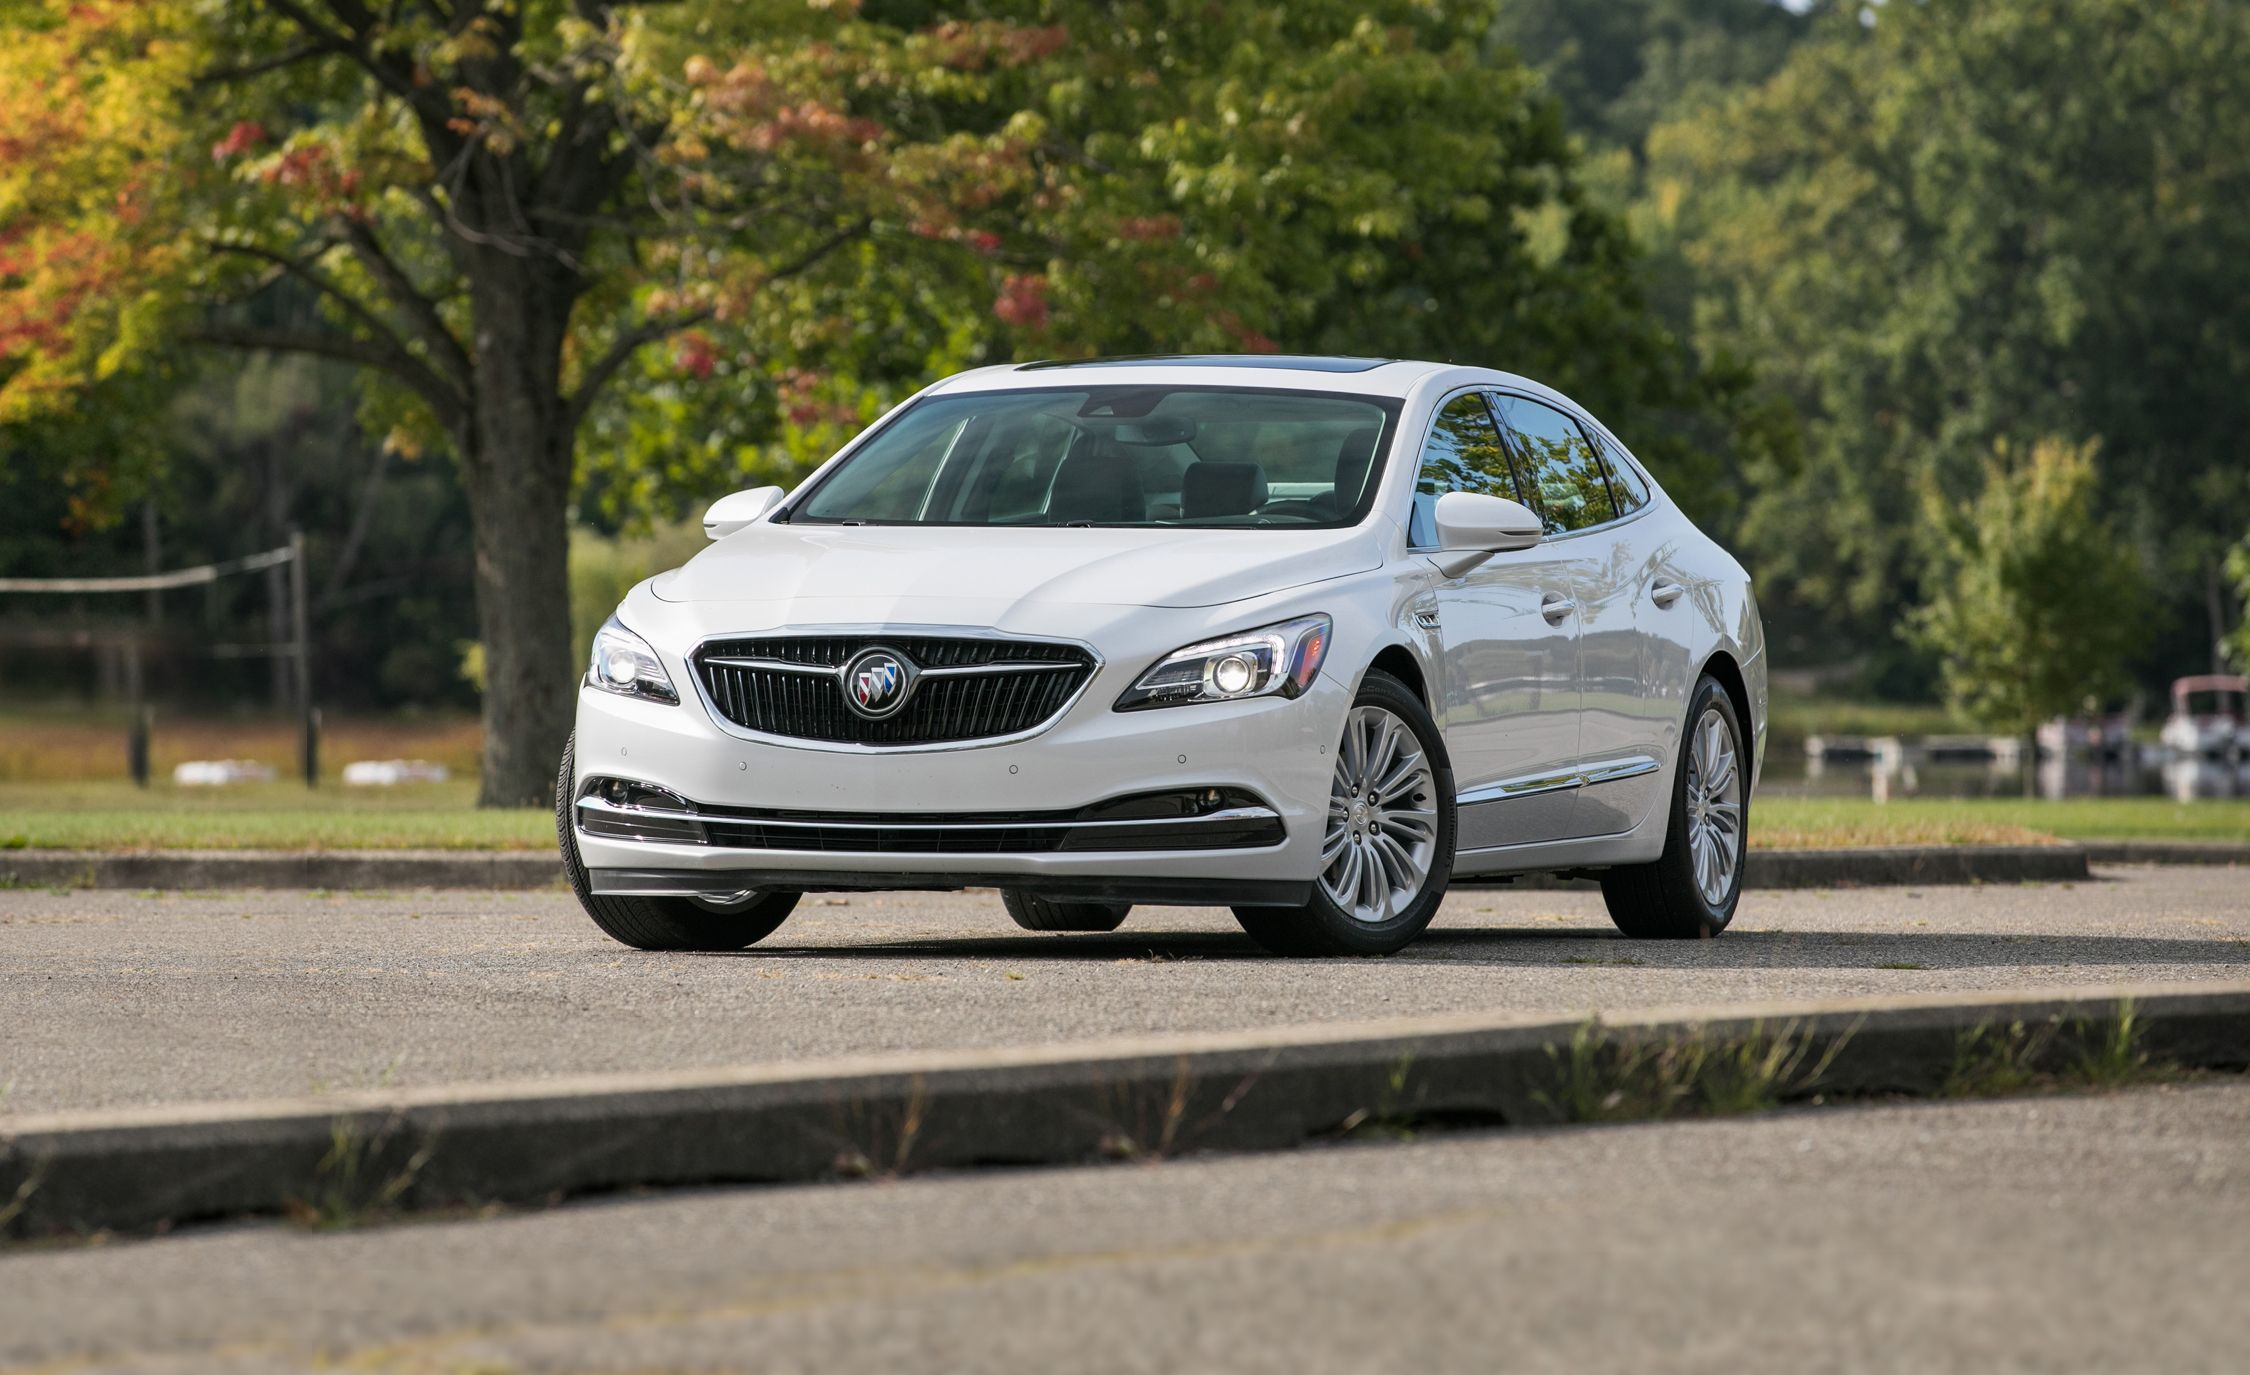 Buick LaCrosse: When to Change Engine Oil